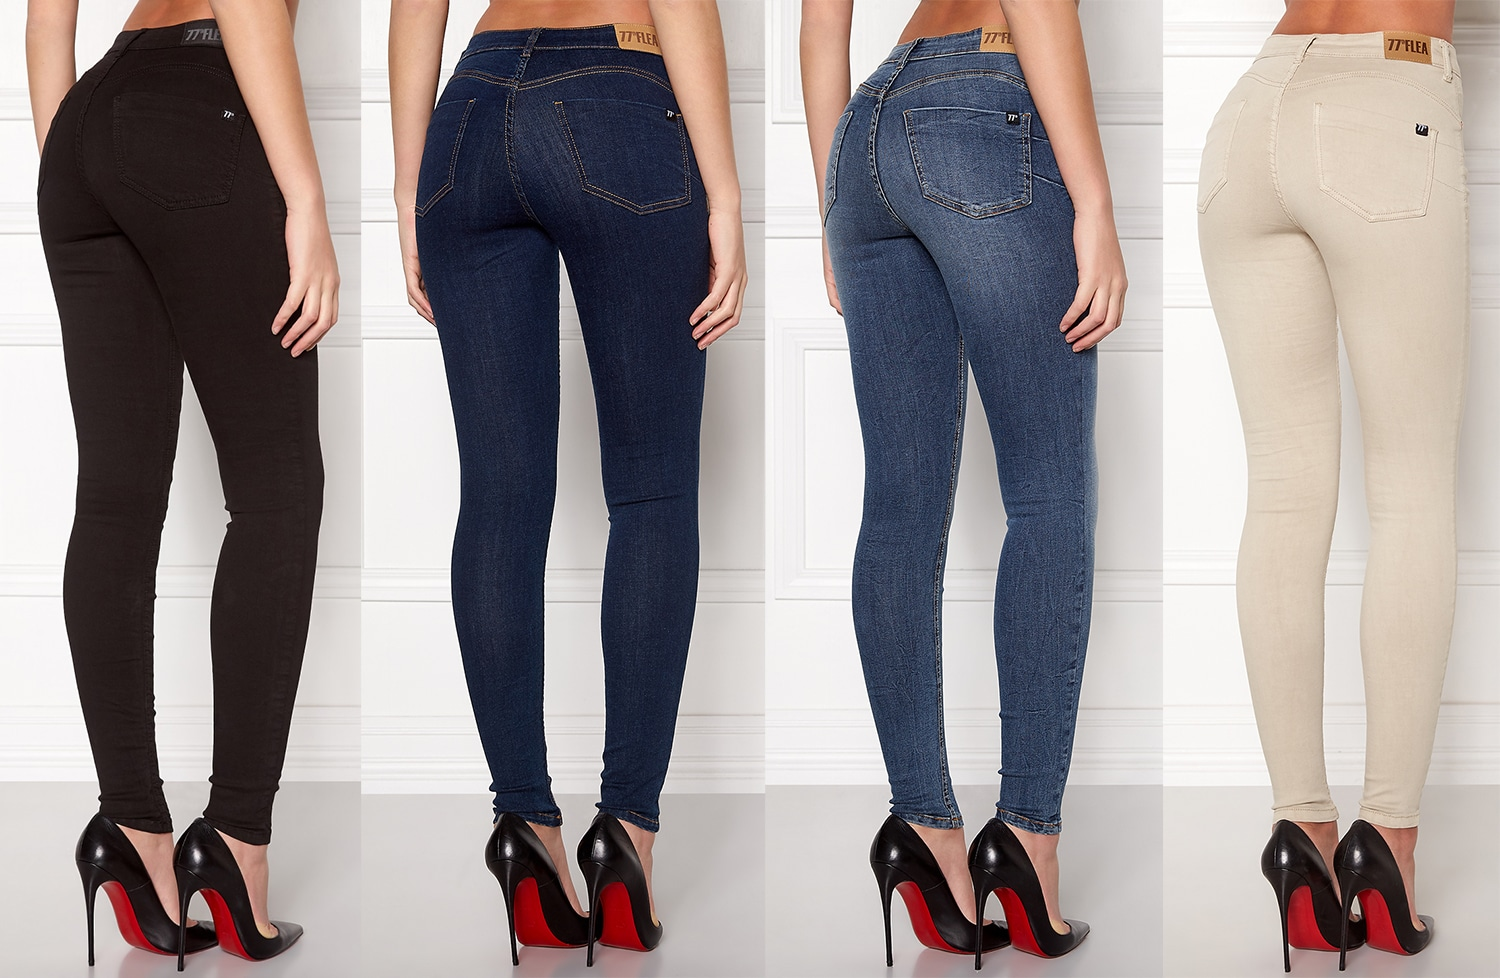 shaping jeans push up jeans snygg rumpa